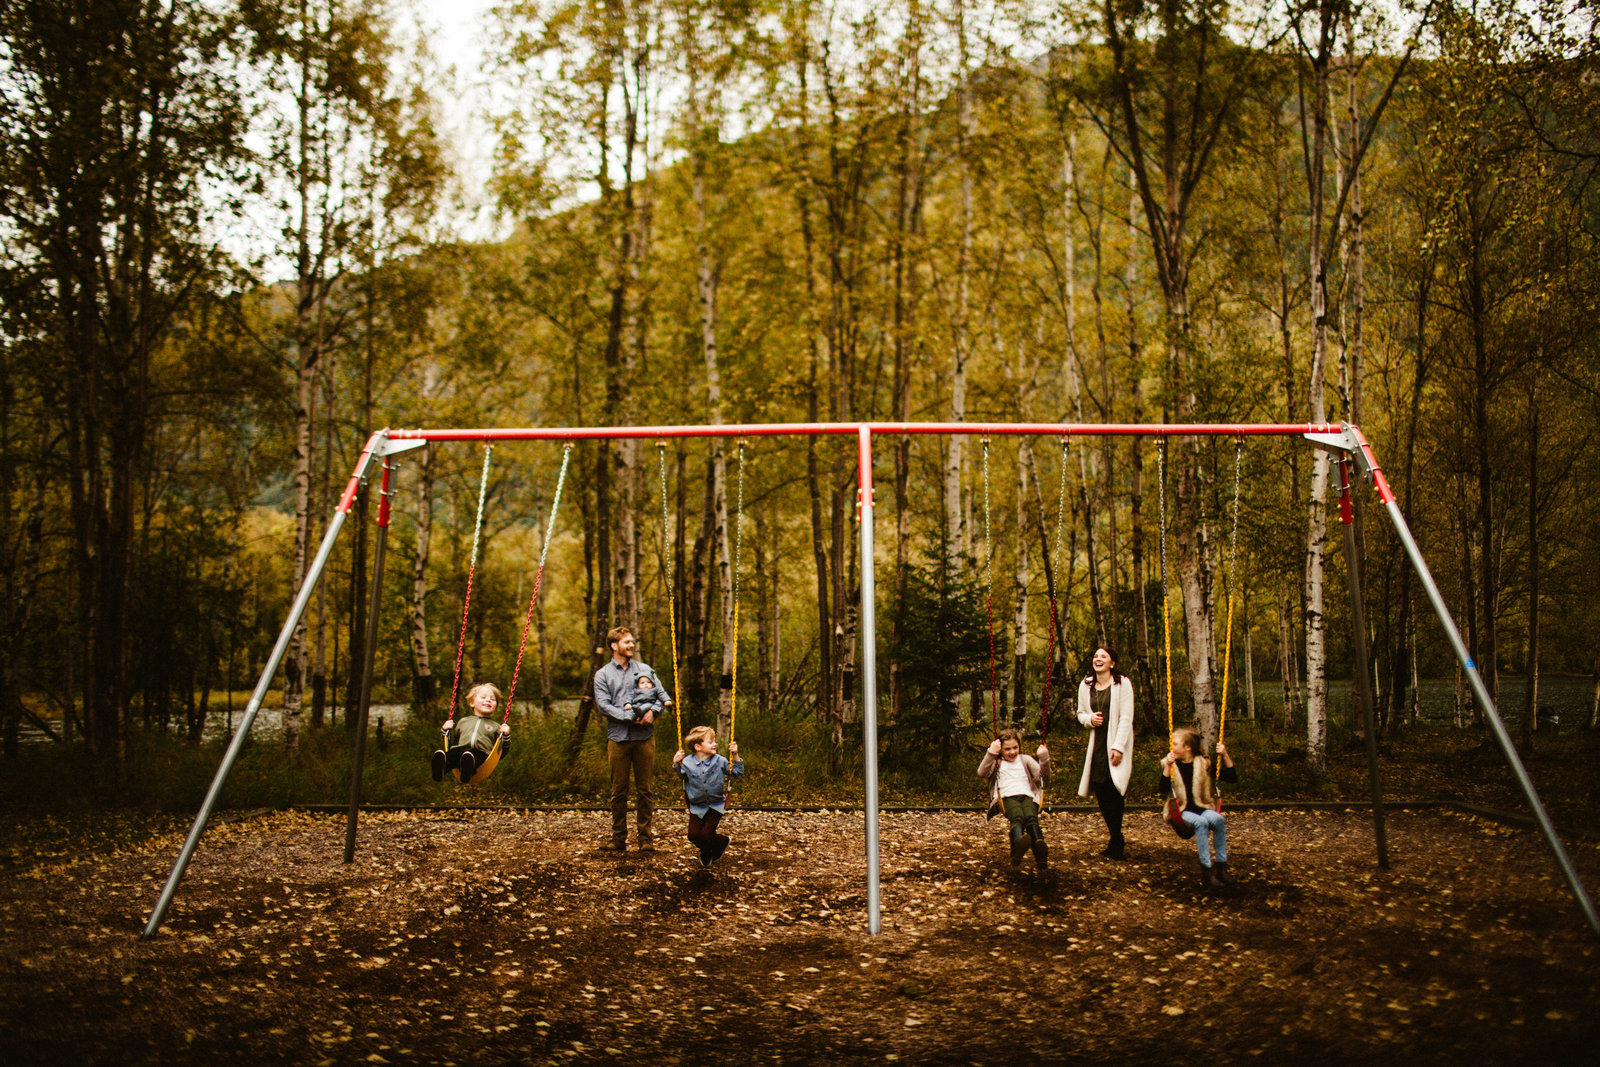 family with five children on a swing set in the fall